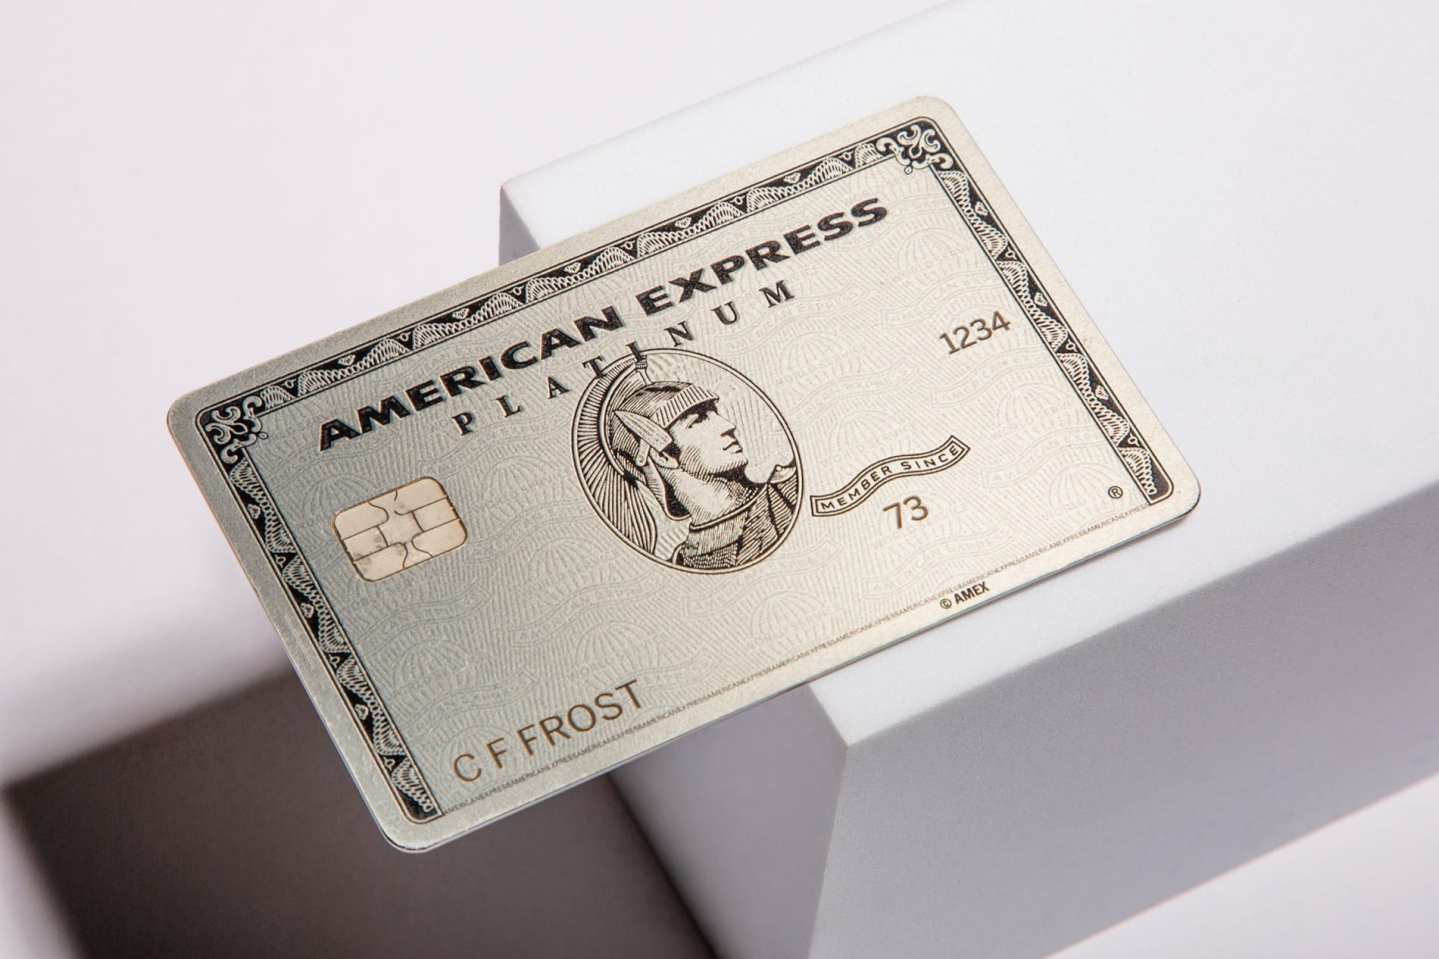 Amex Platinum Card Review: Is it Worth the Annual Fee?